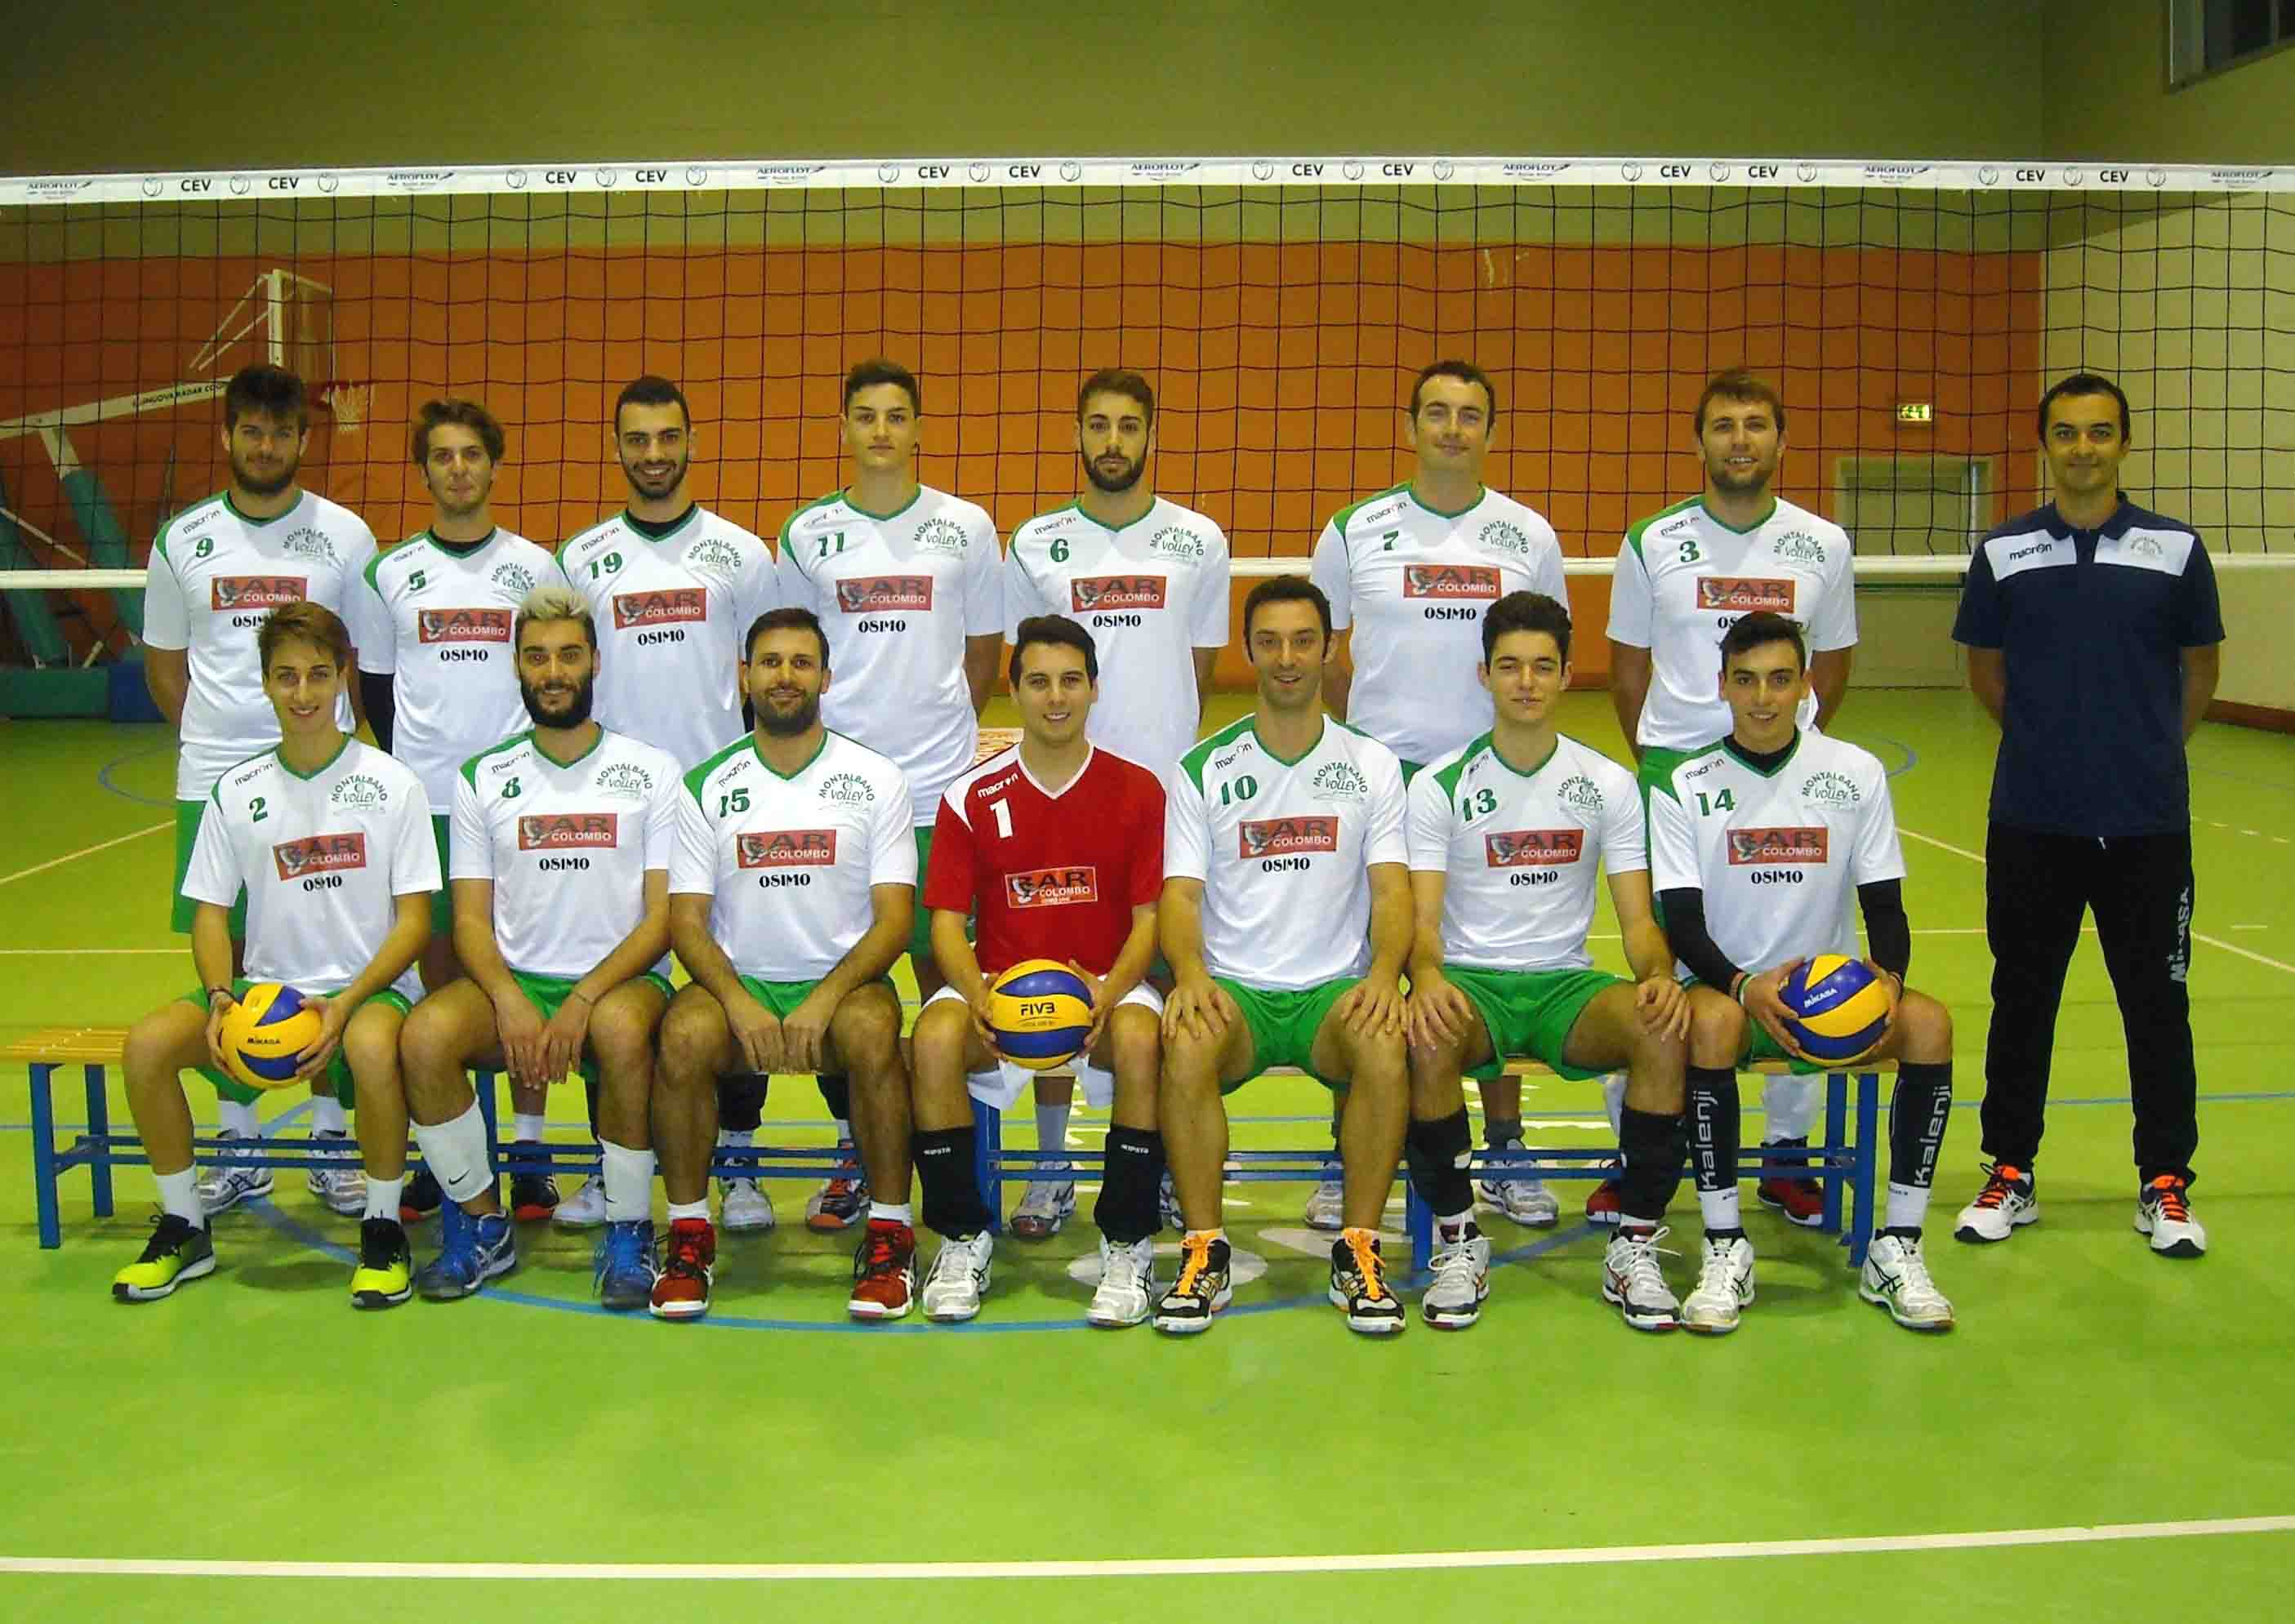 Montalbano Volley Serie D Stagione 2015 2016